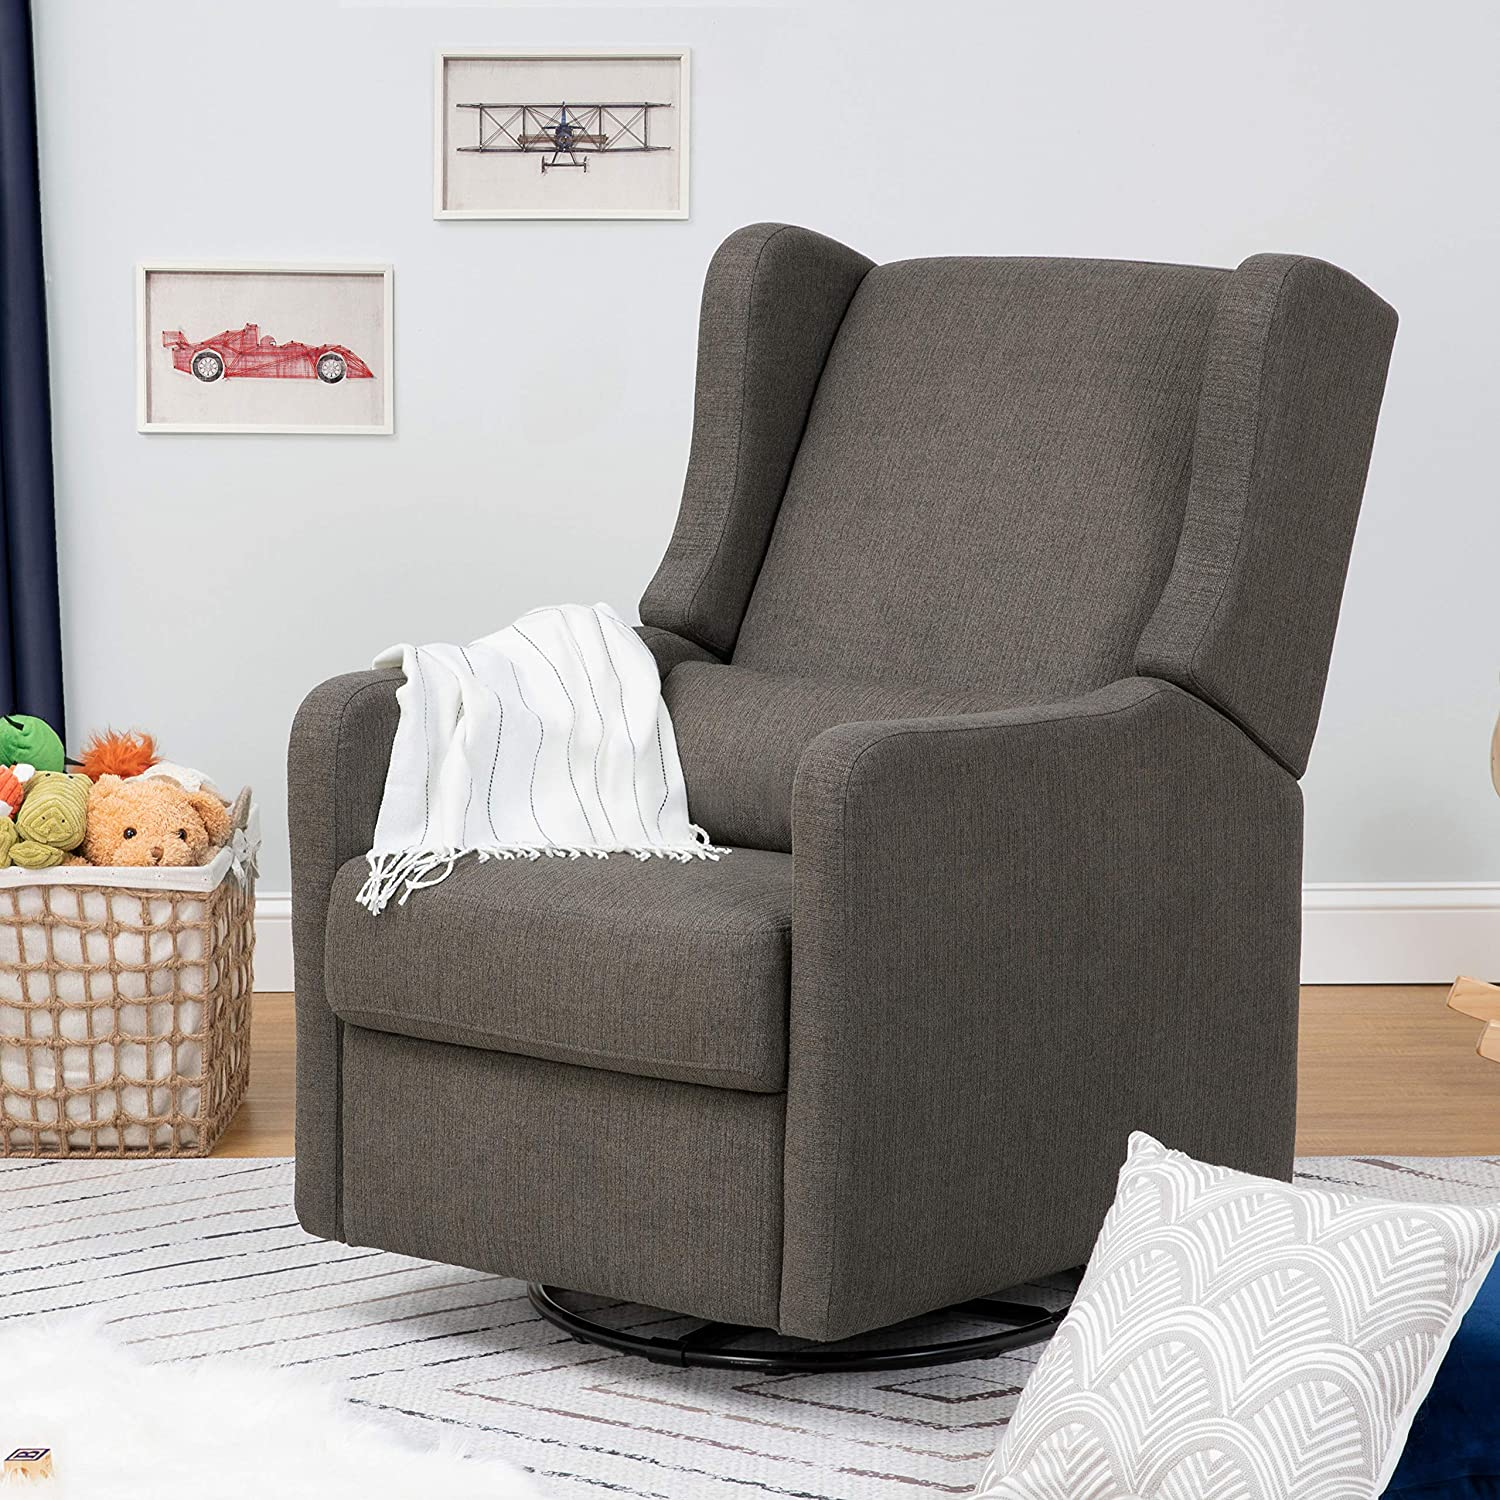 CARTERS BY DAVINCI Adrian Swivel Glider with Storage Ottoman in Cream Linen Water Repellent and Stain Resistant Fabric Greenguard Gold Certified Performance Cream Linen F18787PCM